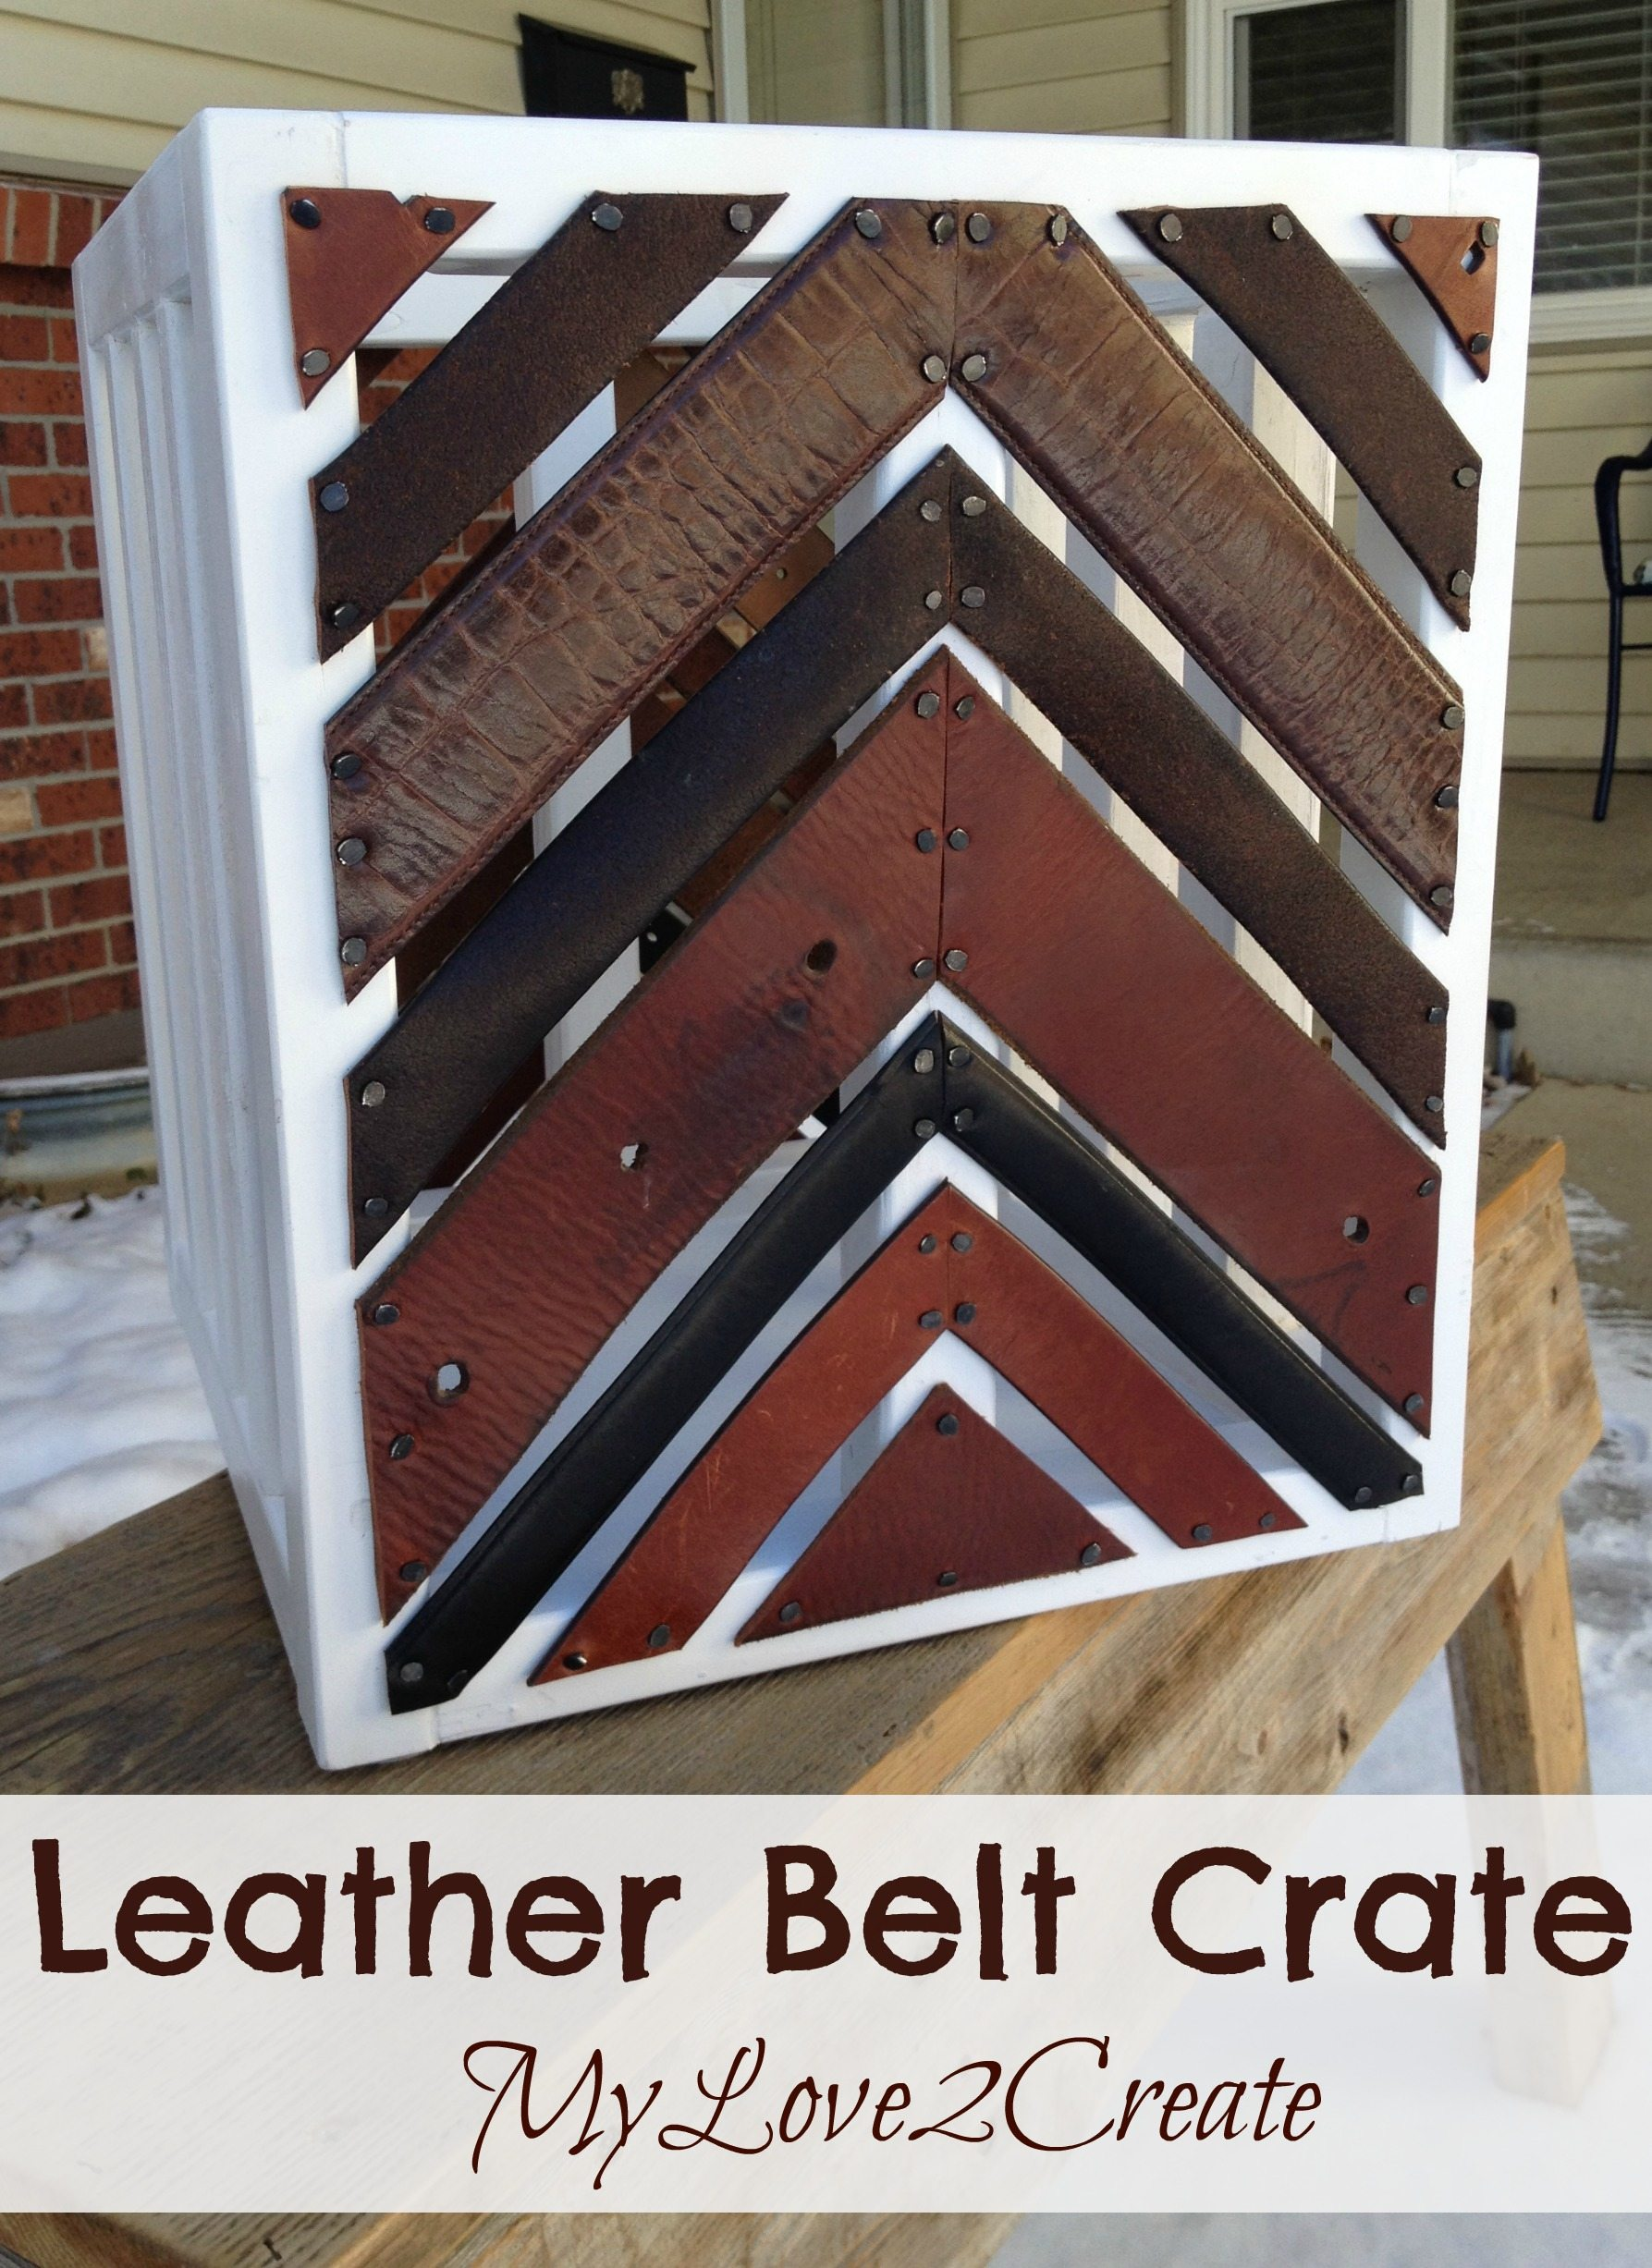 MyLove2Create leather belt crate